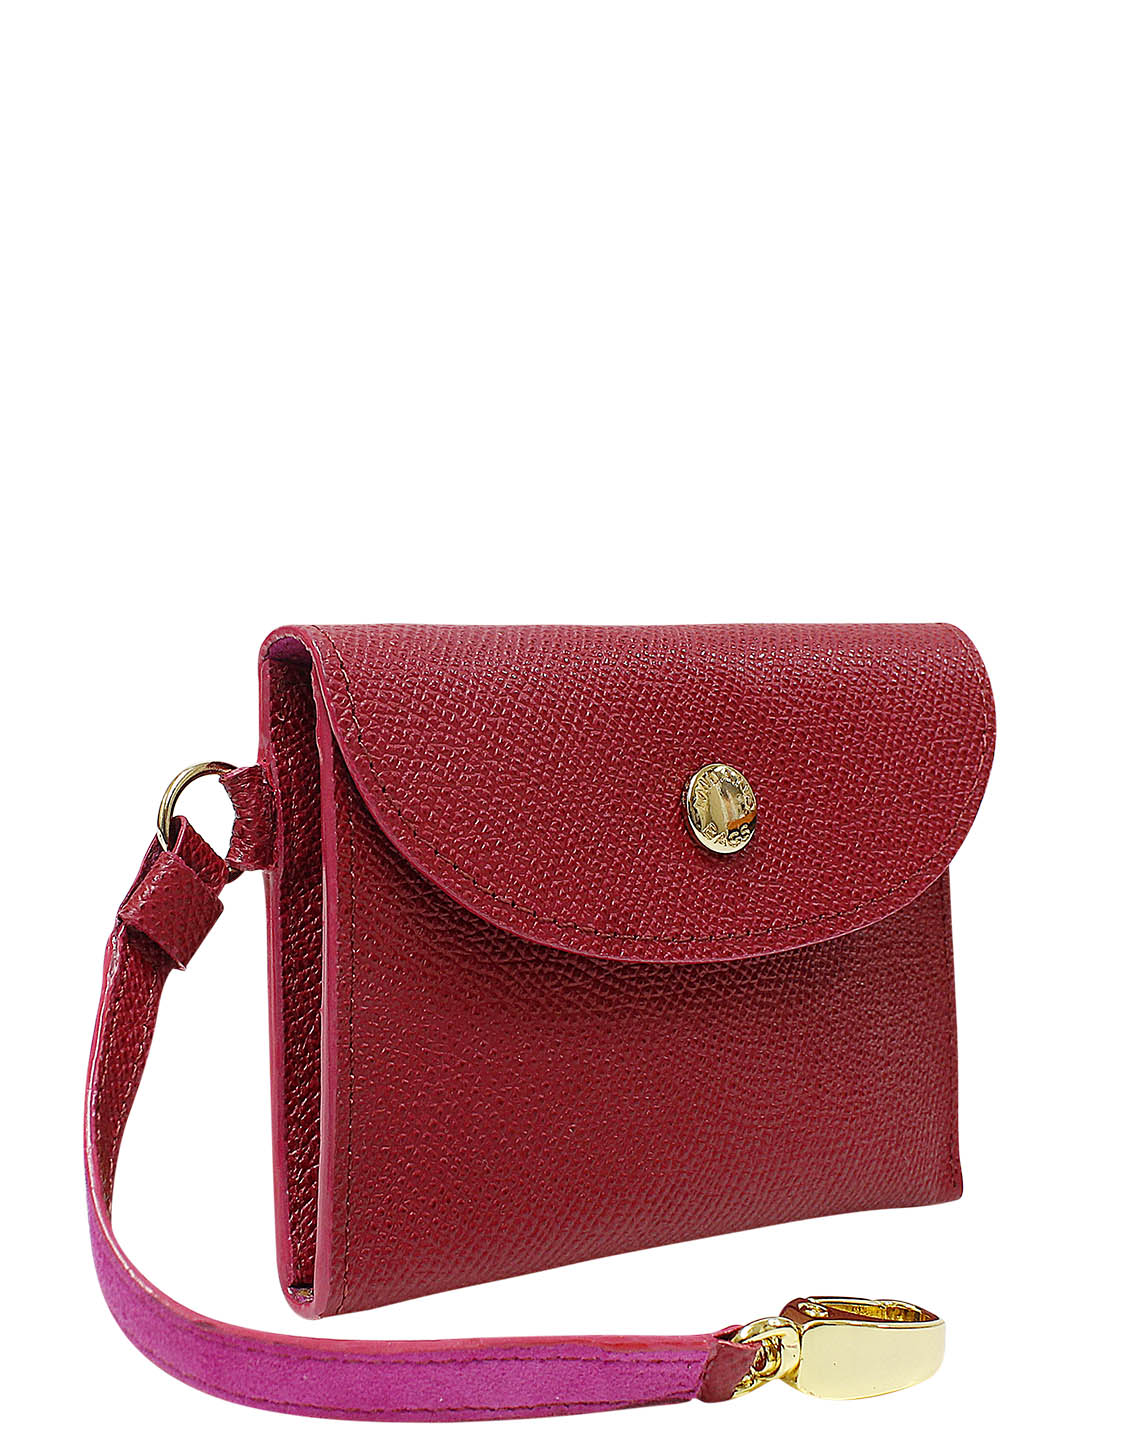 Monedero M-83 Color Rojo